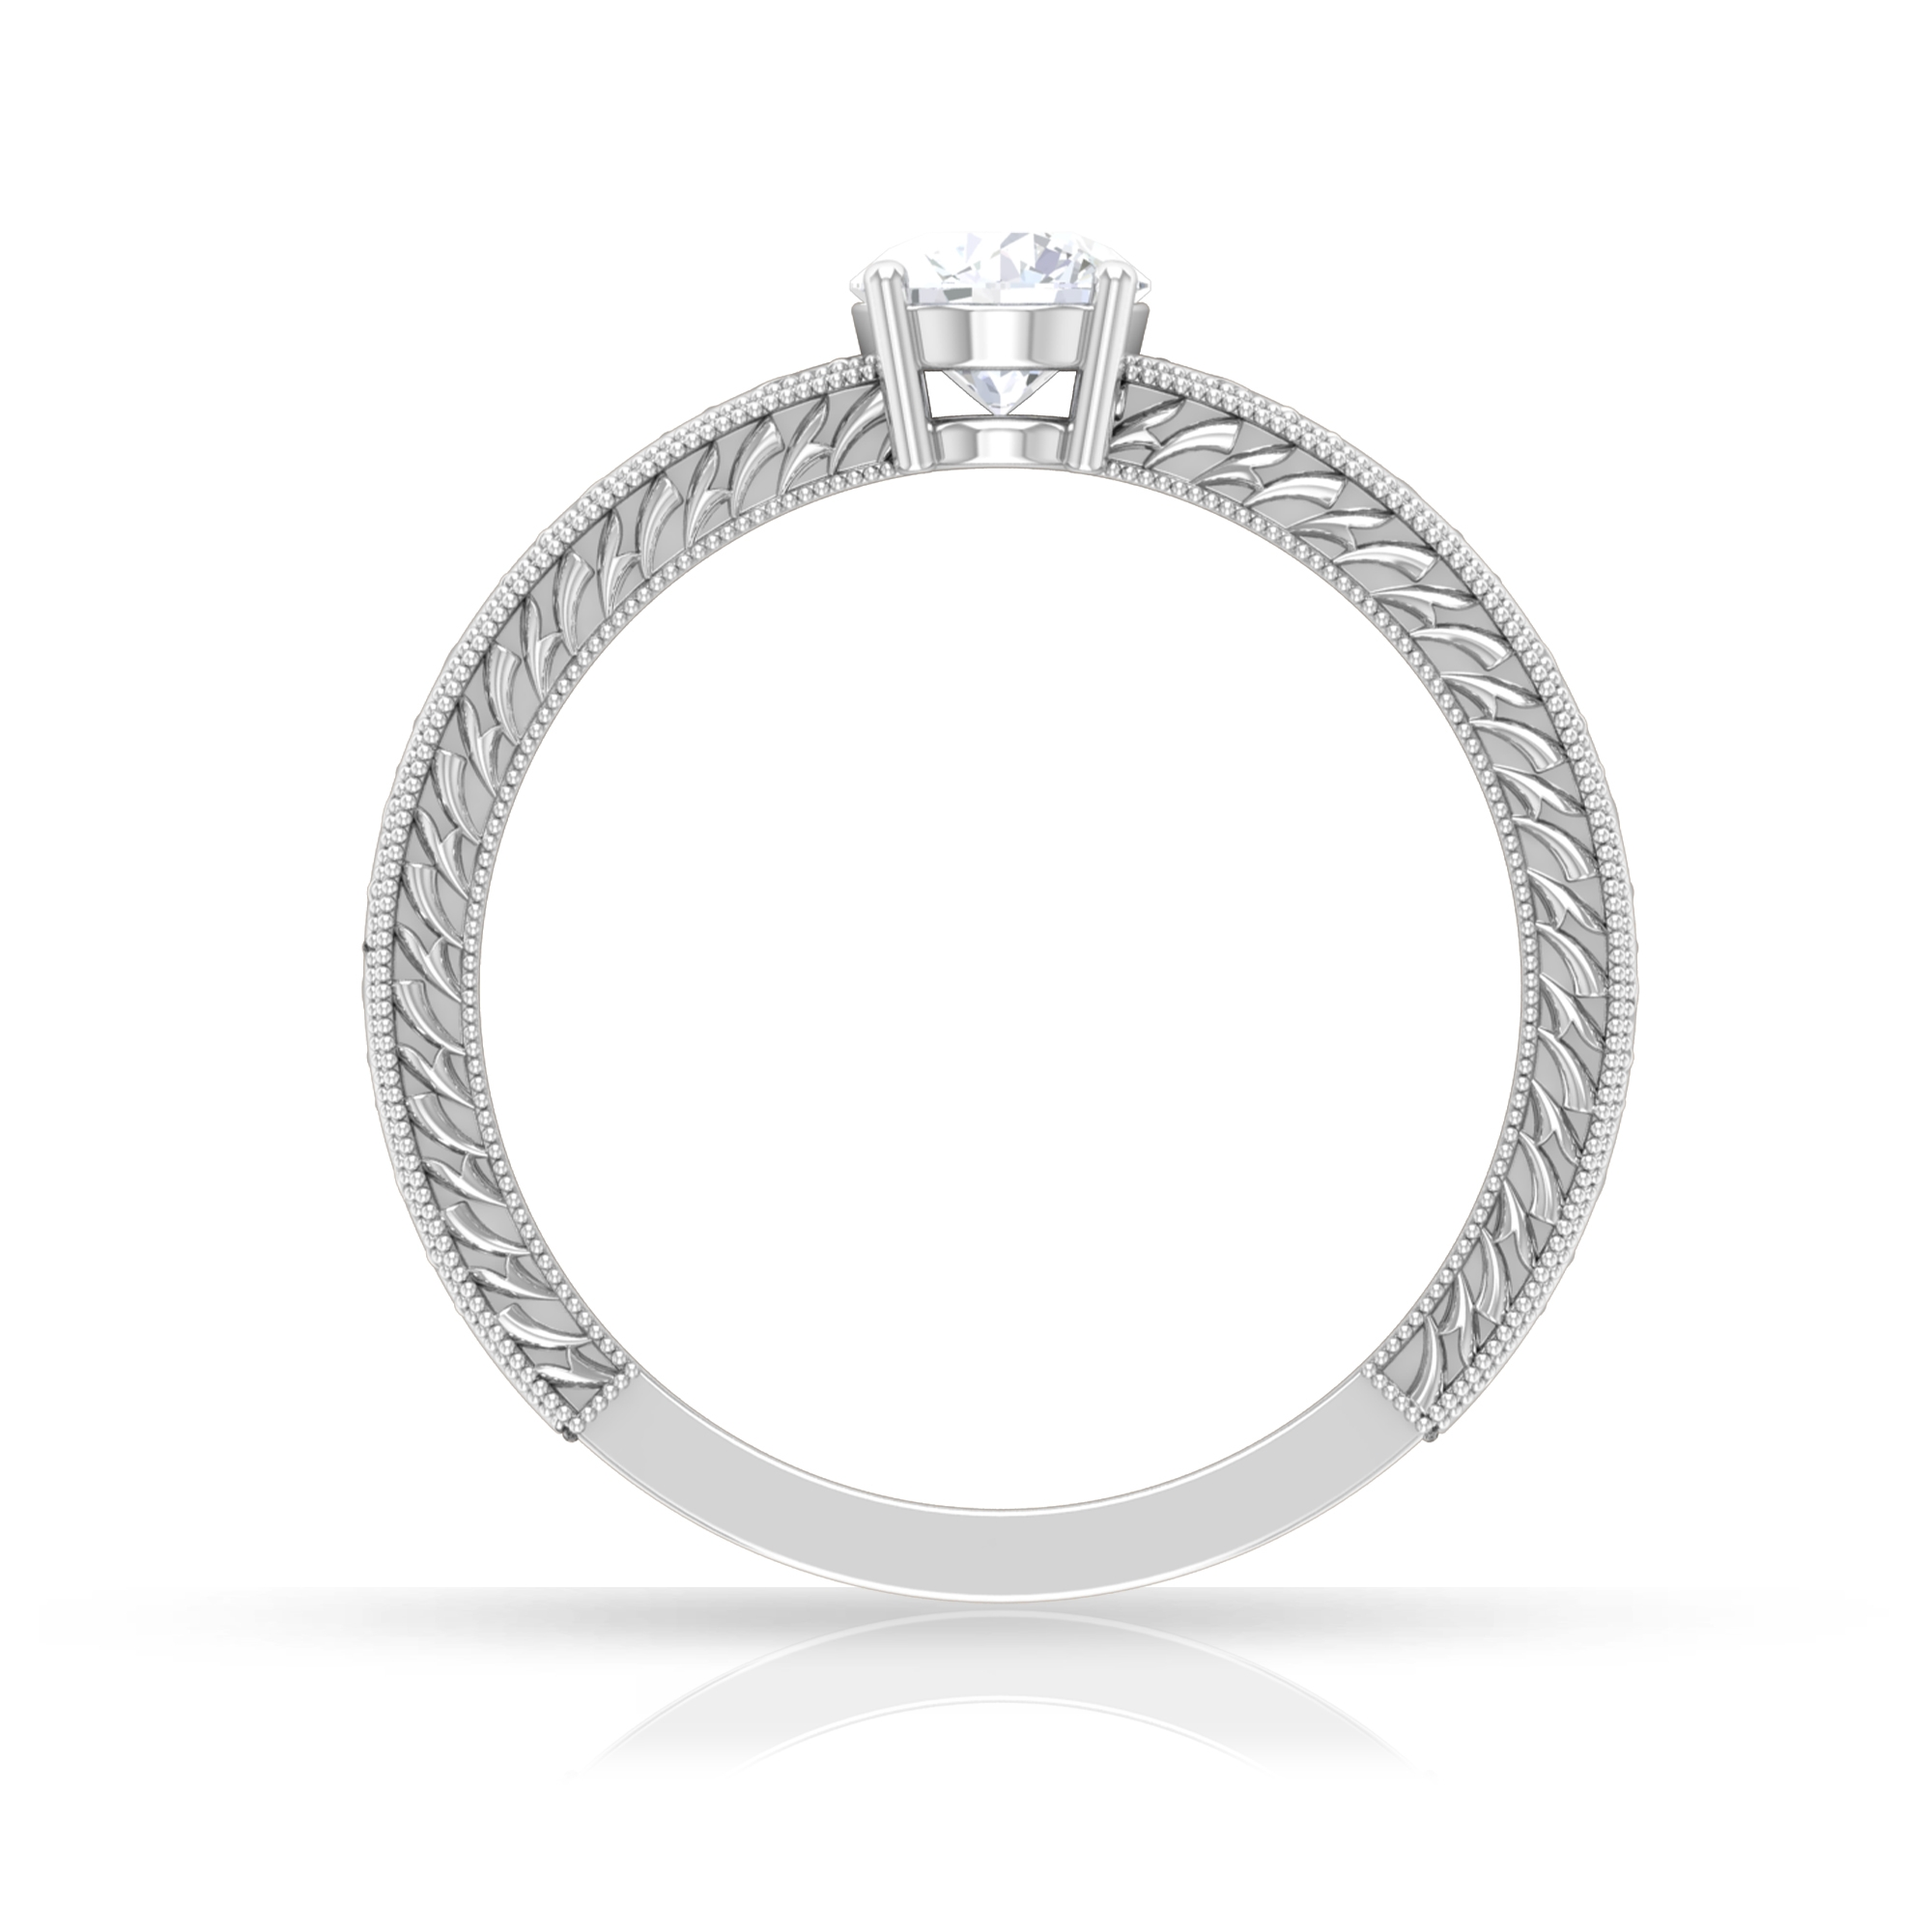 5 MM Round Cut Diamond Solitaire Ring in 4 Prong Setting with Engraved Details